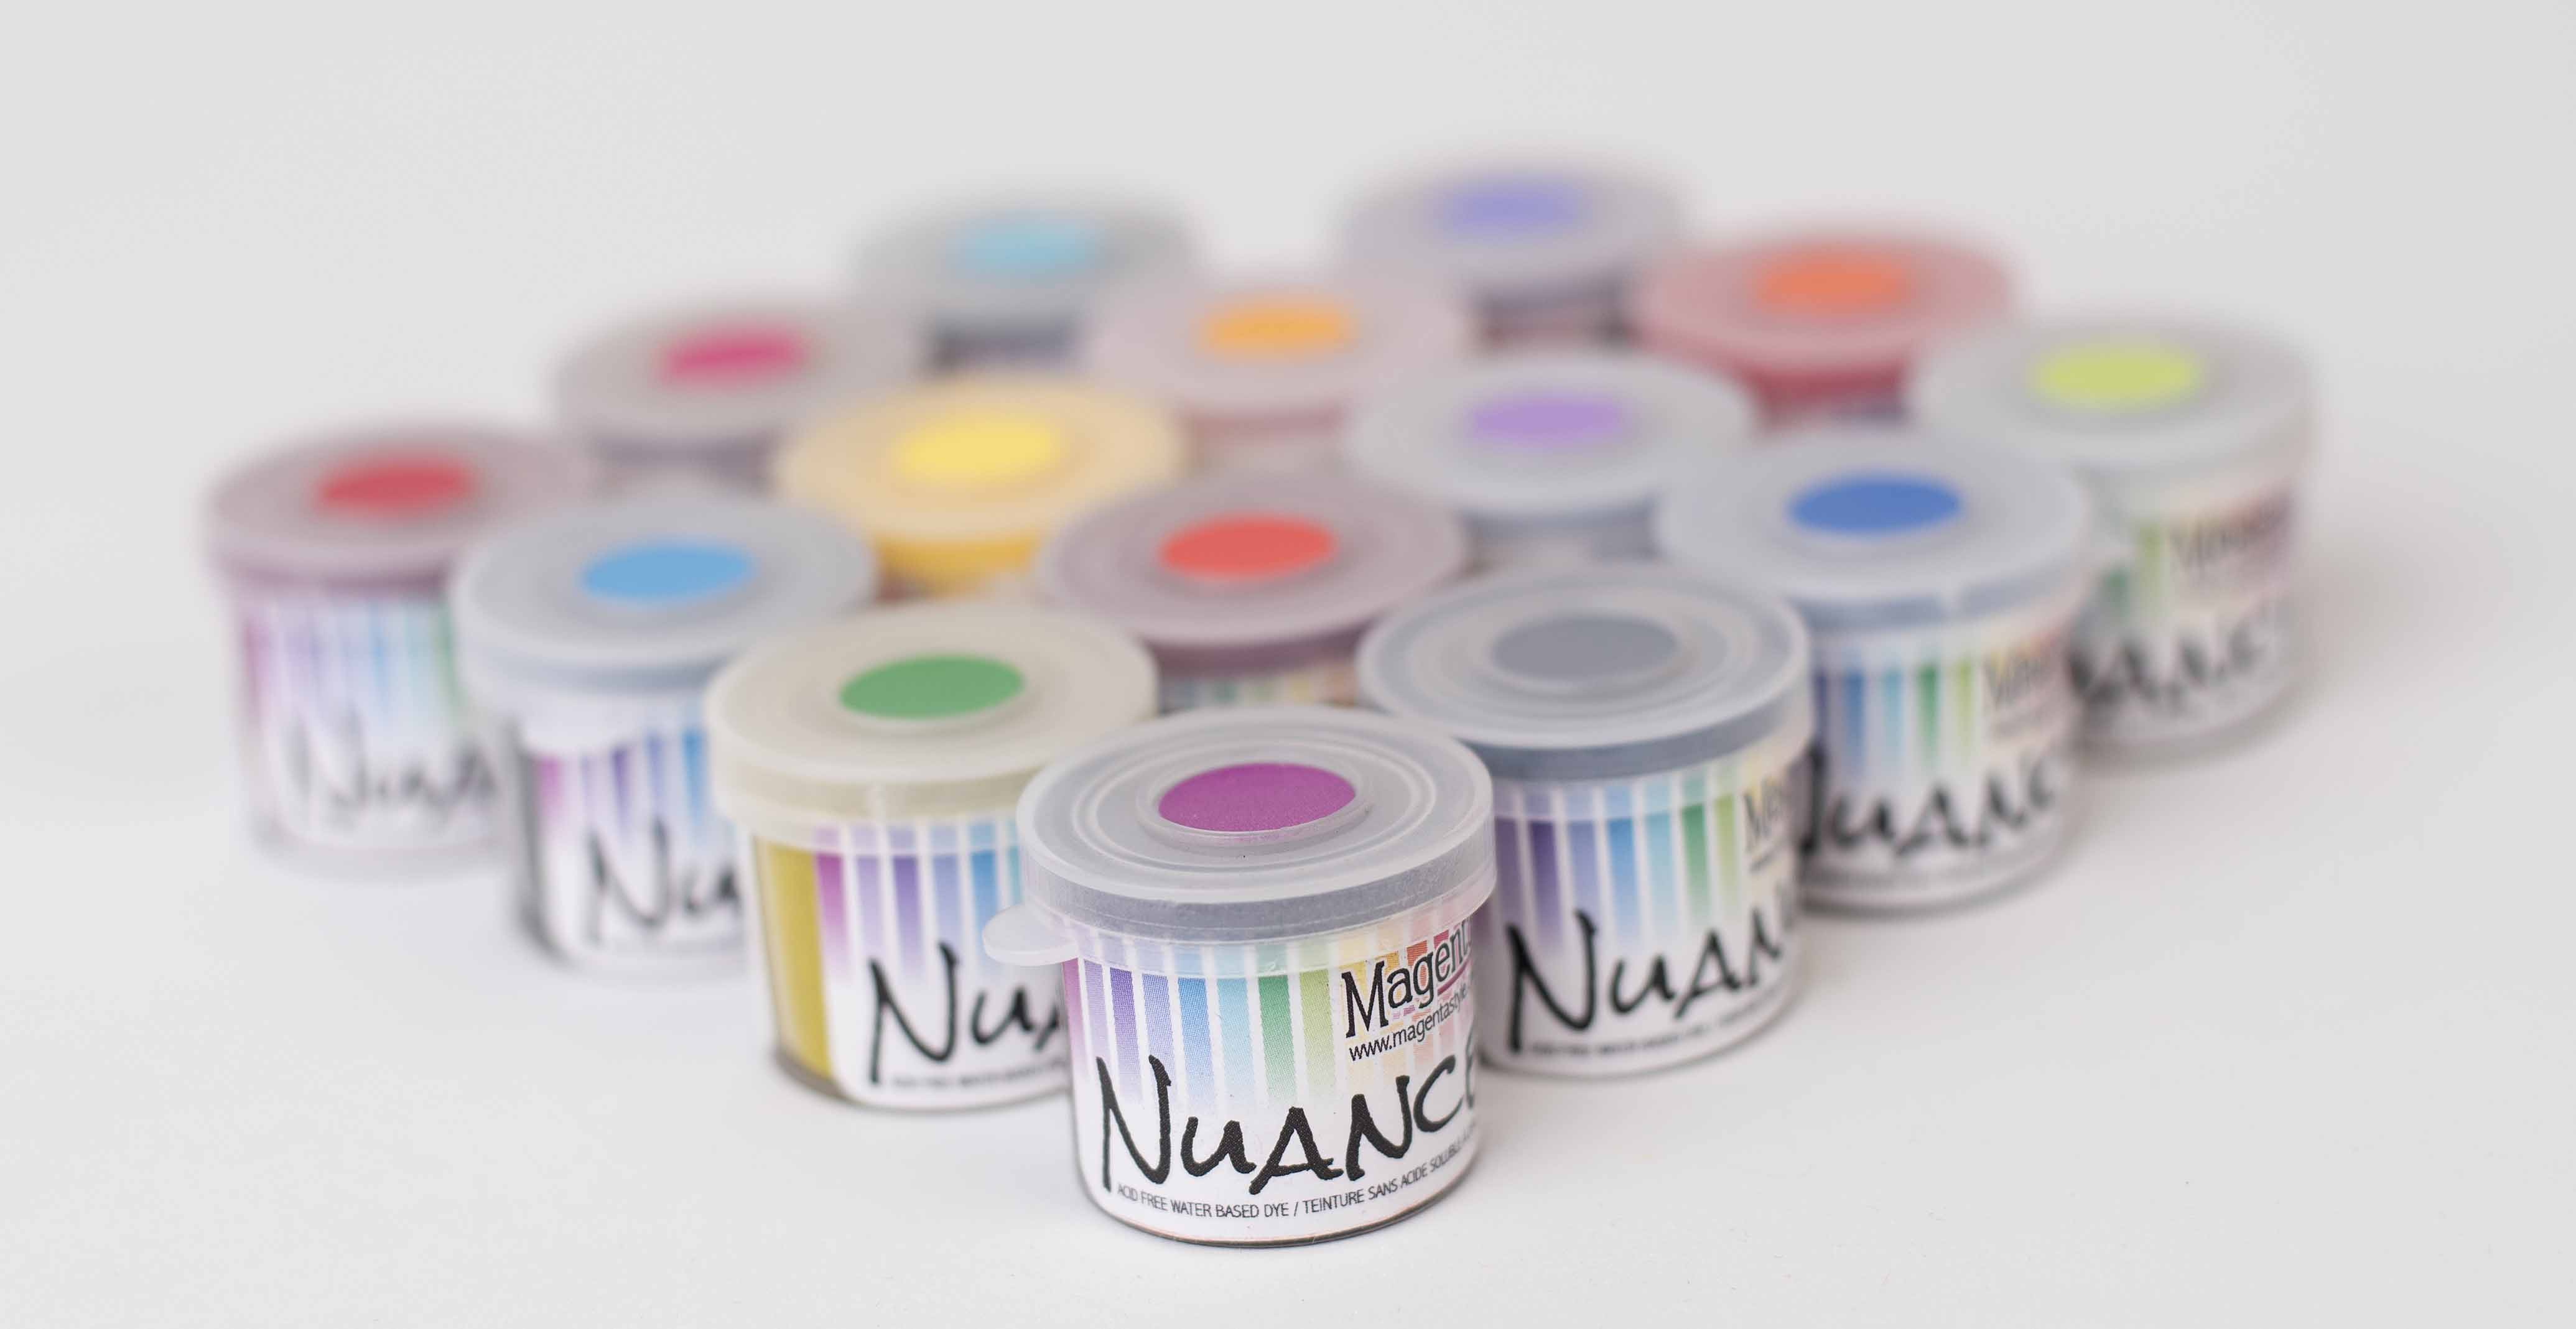 Magenta Nuance Pigment Ink Powders in a variety of colors